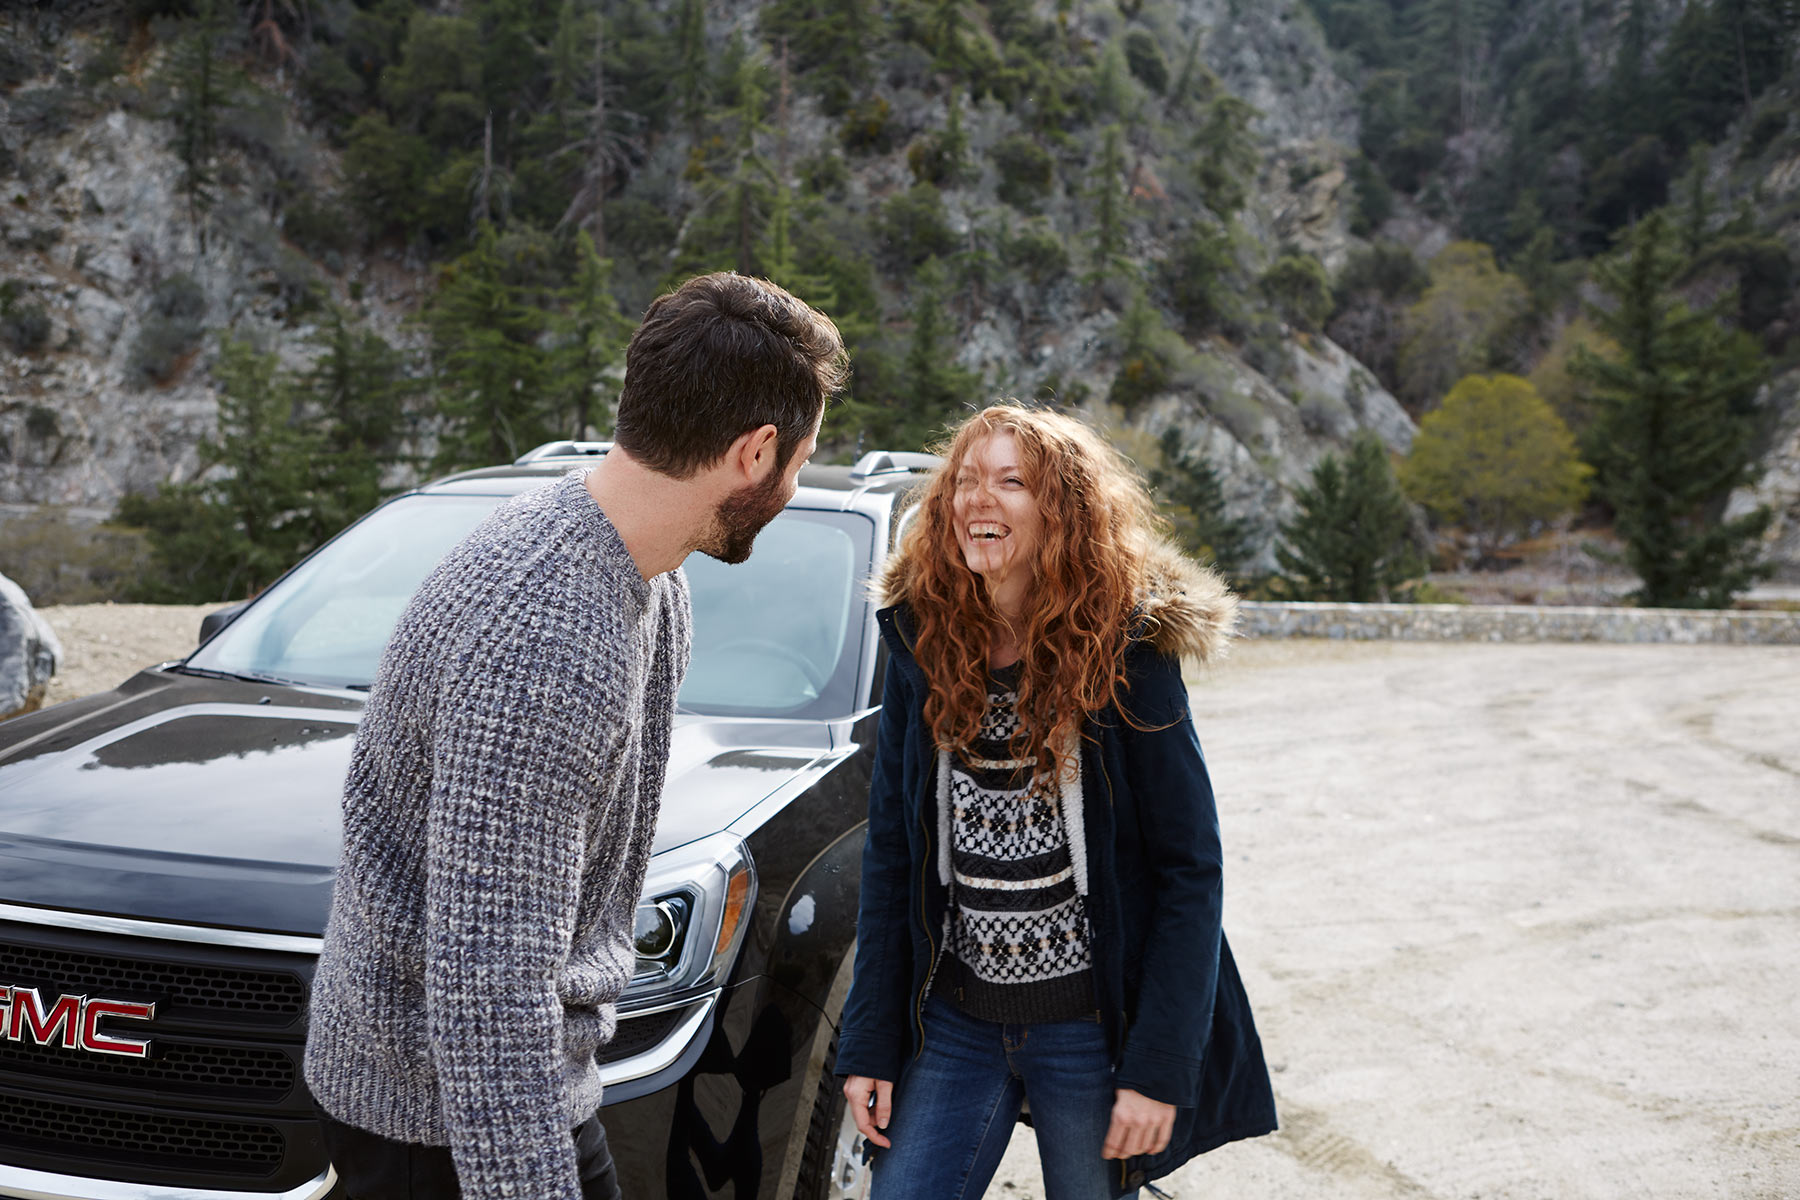 Lifestyle_Car_Auto_Advertising_Chicago_Los_Angeles_Young_Couple_Mountains_SUV_Laughing_Fun_Hooded_Jacket_Fur_Sweater_Beard_Read_Hair_Mike_Henry_Photography